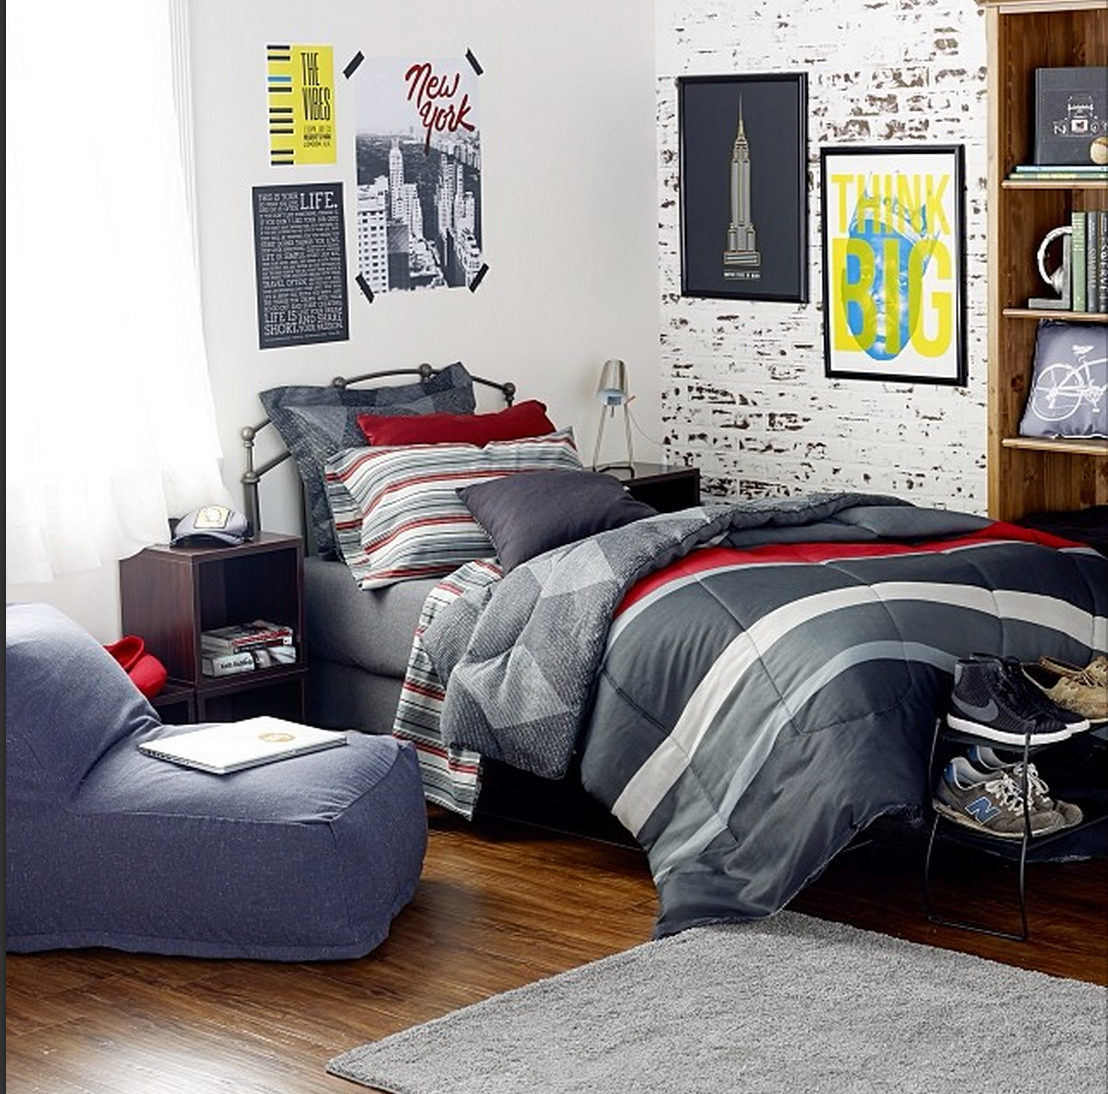 Dormify For Guys Love This Dormified Dorm Room For Your Urban